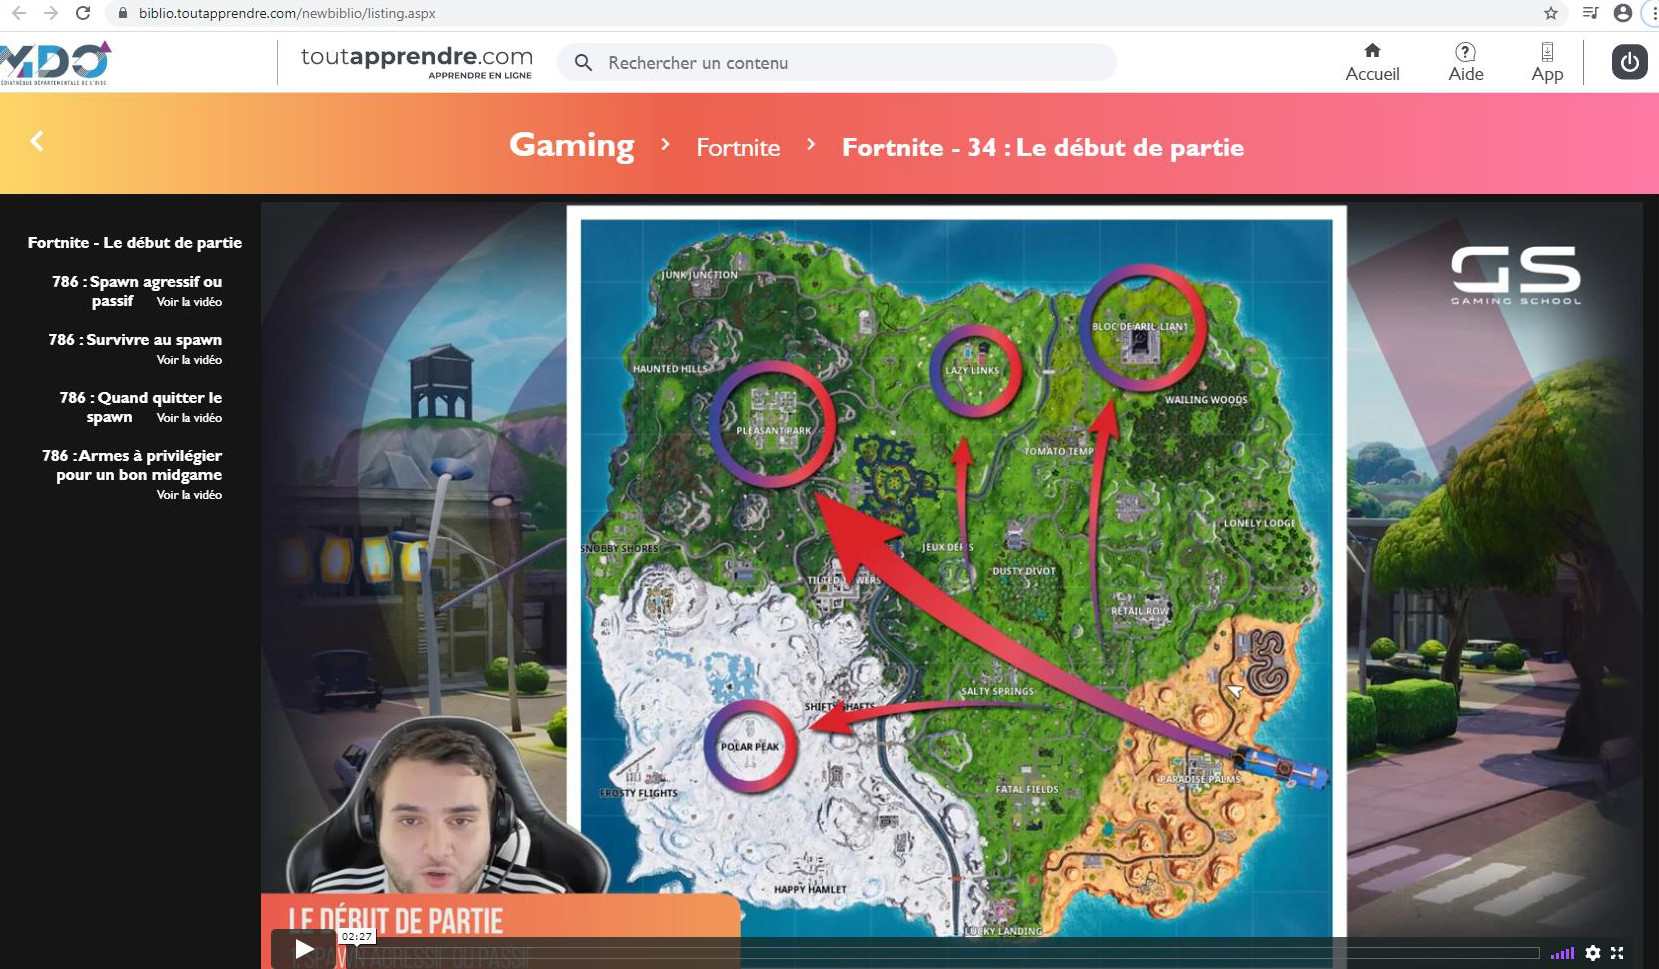 capture ecran ttapprendre fornite